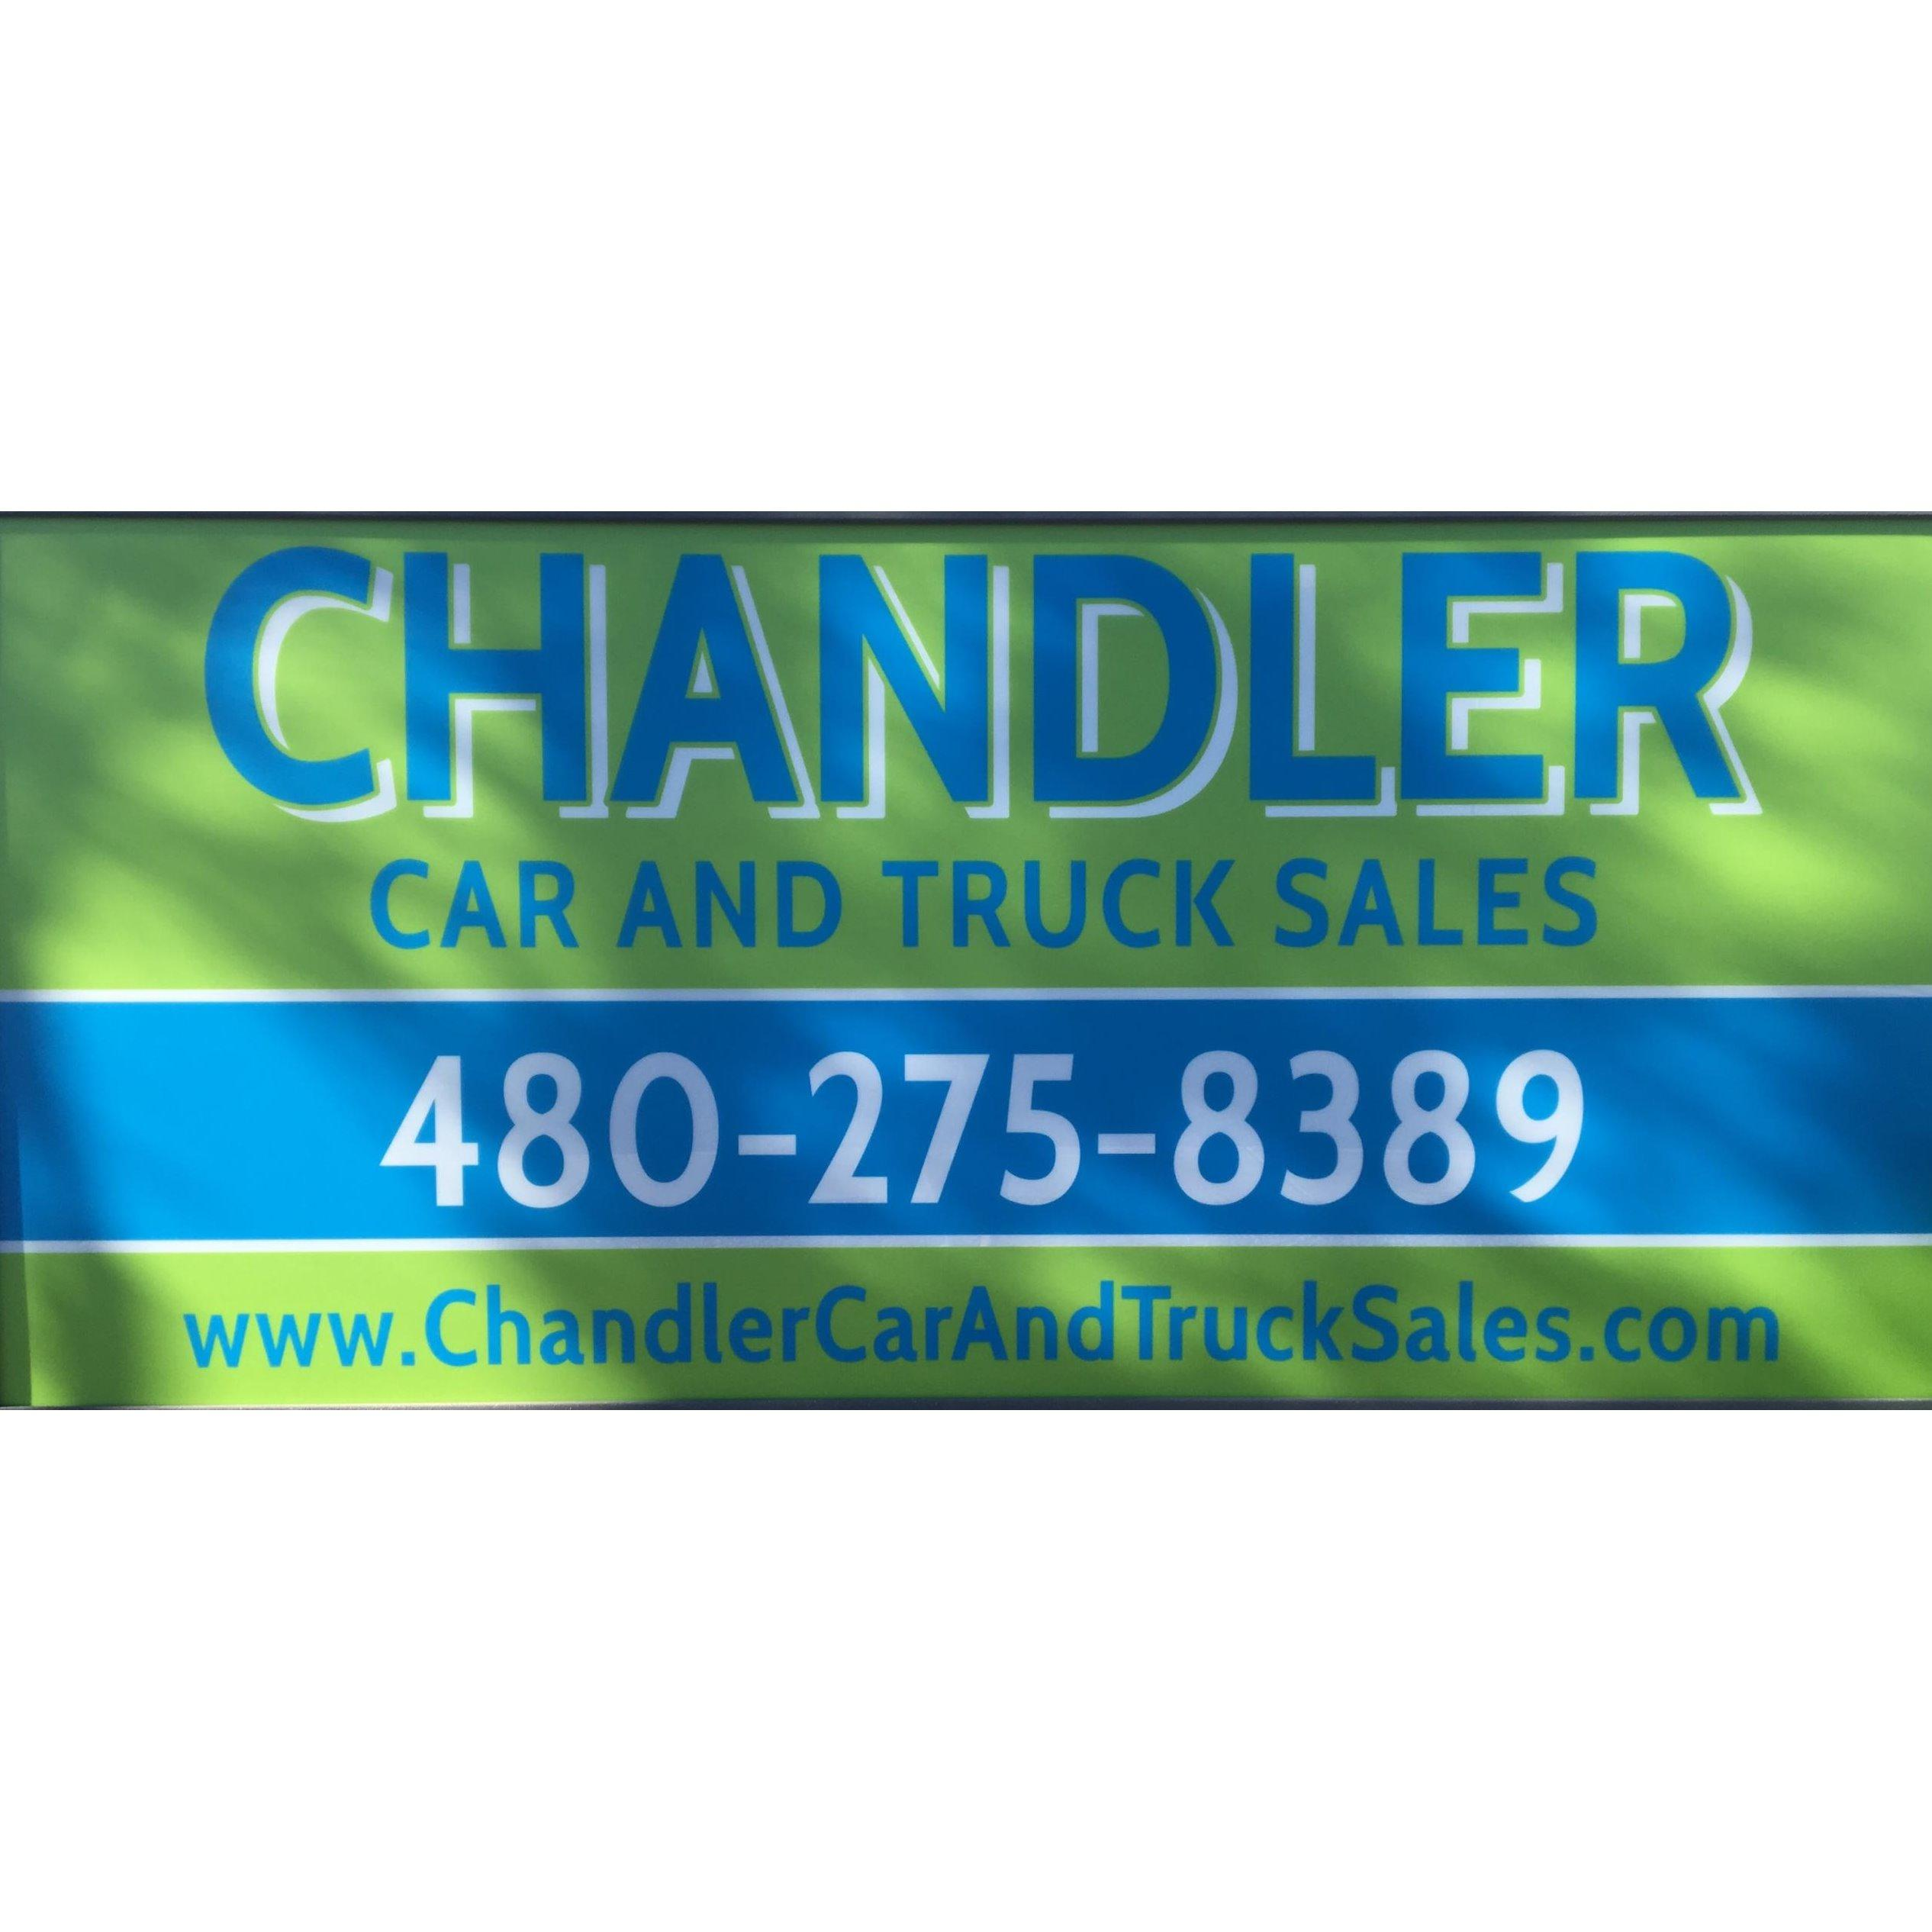 Chandler Car and Truck Sales